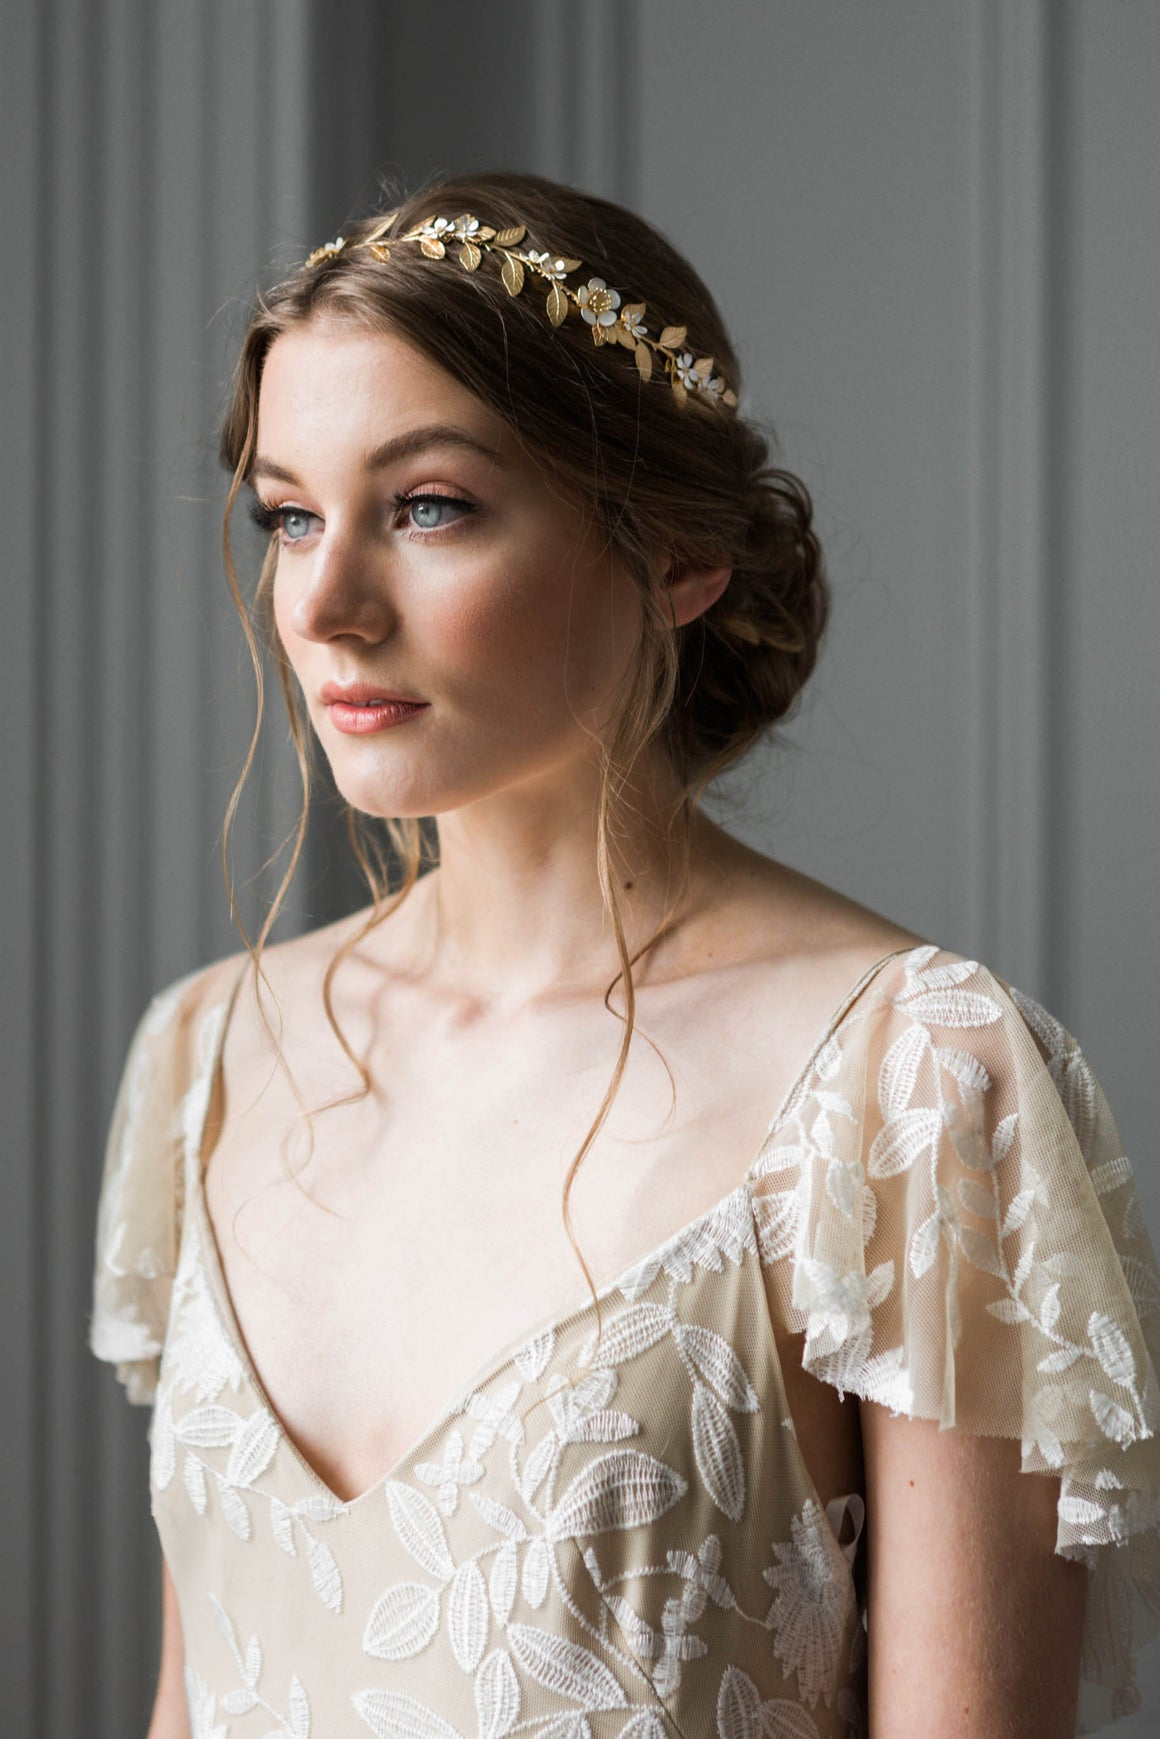 Bride in wedding dress wearing a headpiece made of gold vines